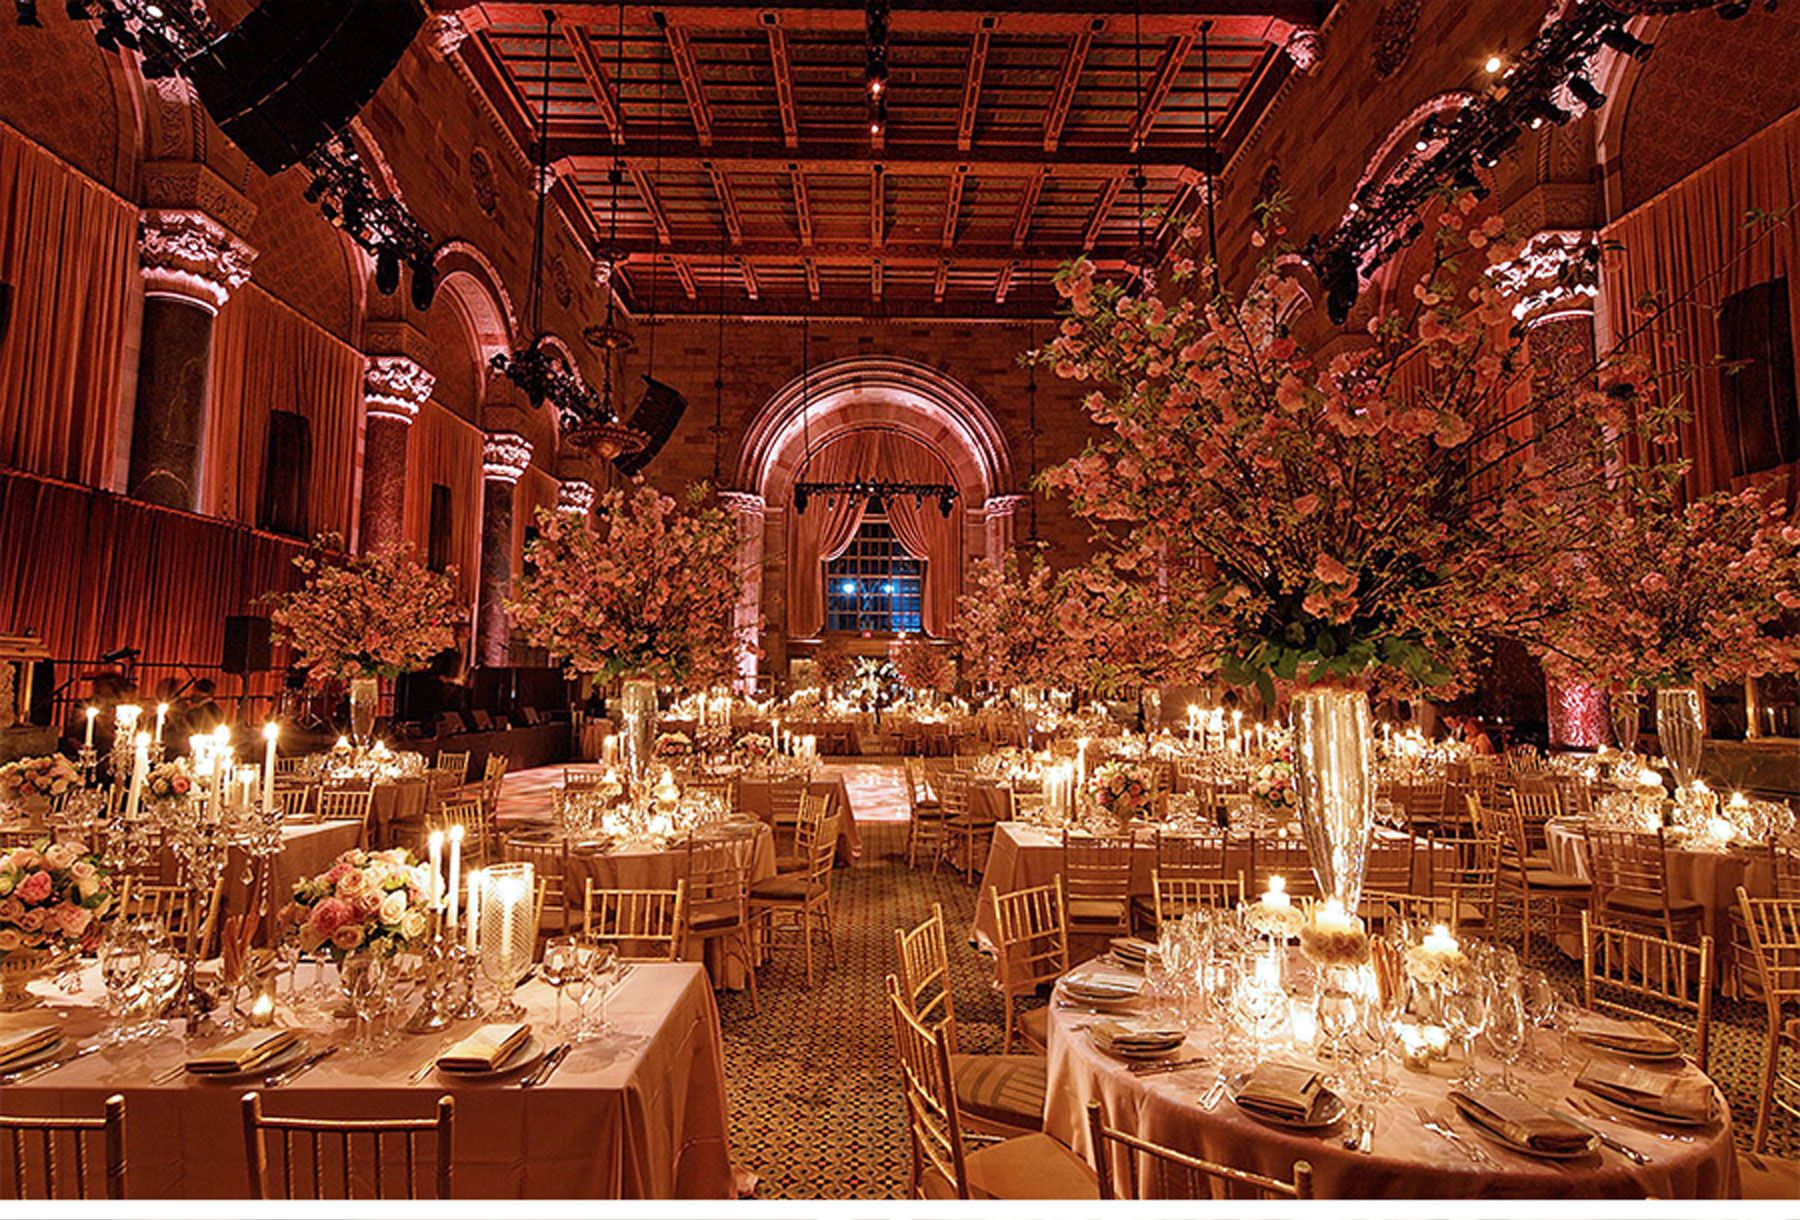 The new york public library weddings and receptions guide wedding the new york public library weddings and receptions guide wedding pinterest library wedding reception and weddings junglespirit Choice Image